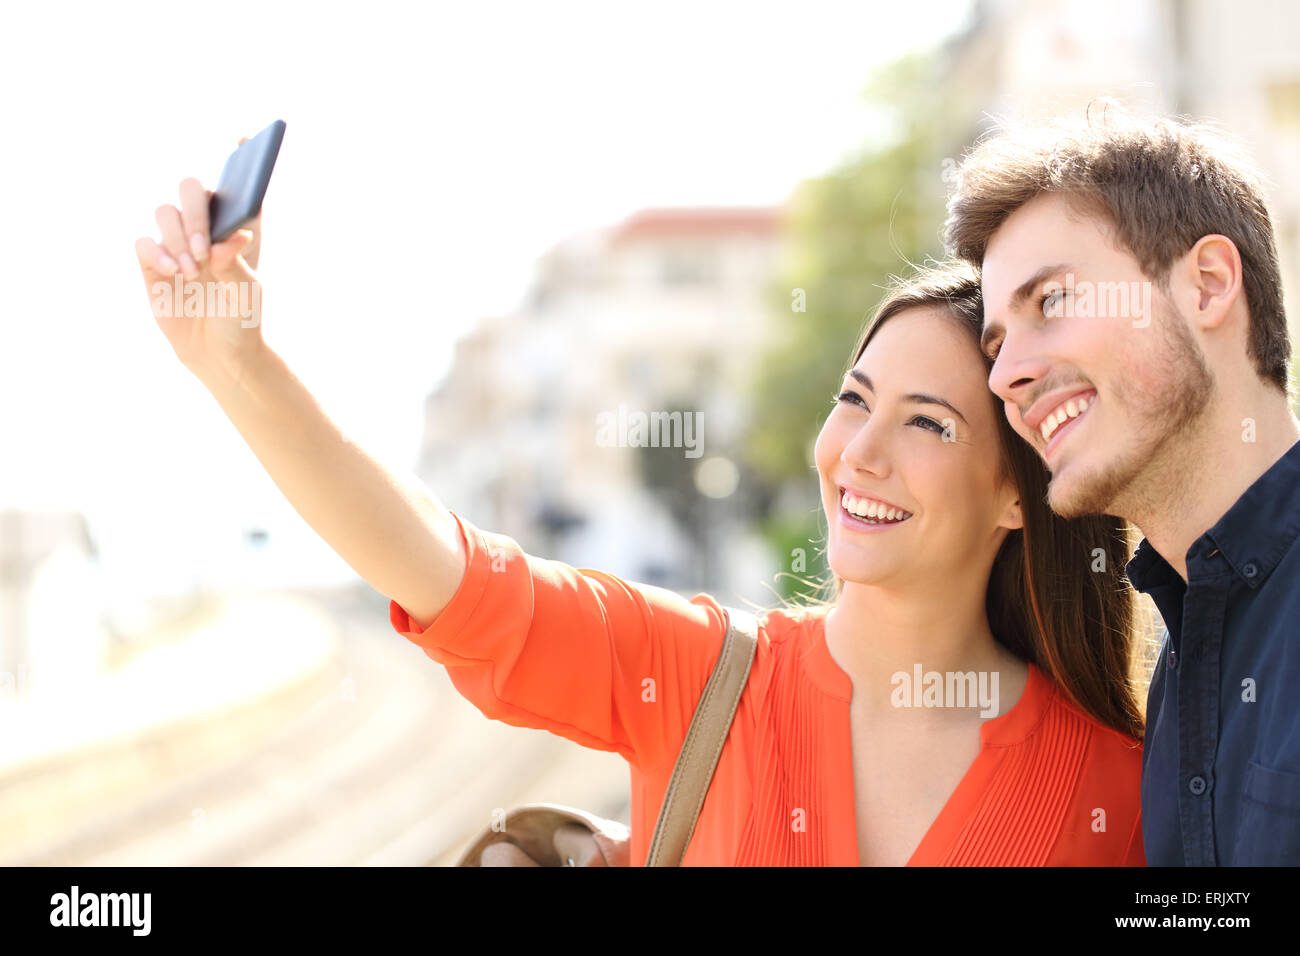 Traveler tourists couple photographing a selfie in a train station - Stock Image